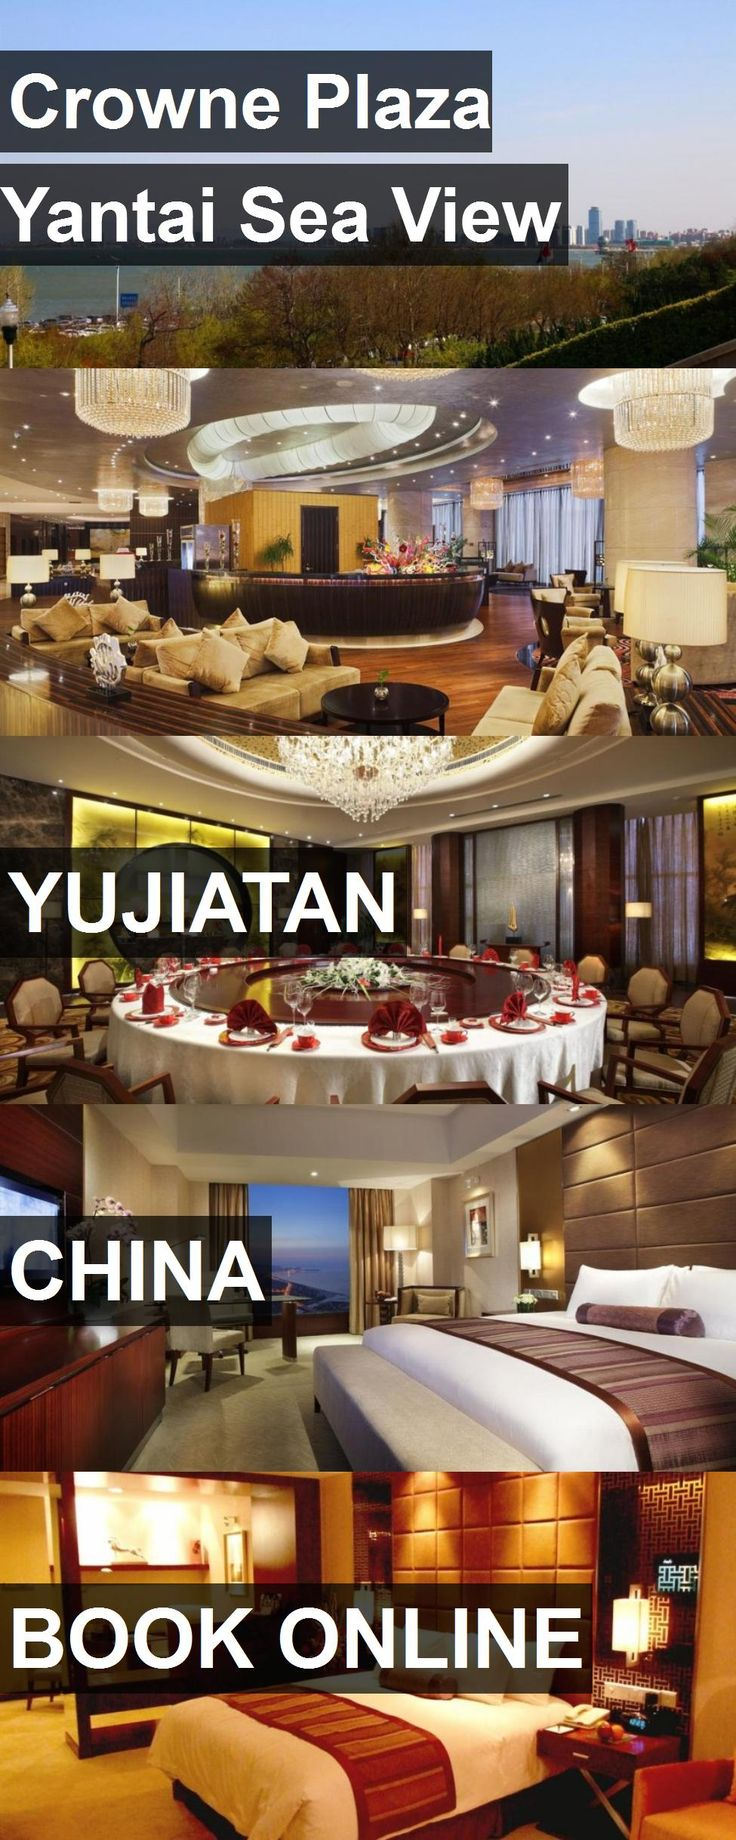 Hotel Crowne Plaza Yantai Sea View in Yujiatan, China. For more information, photos, reviews and best prices please follow the link. #China #Yujiatan #CrownePlazaYantaiSeaView #hotel #travel #vacation